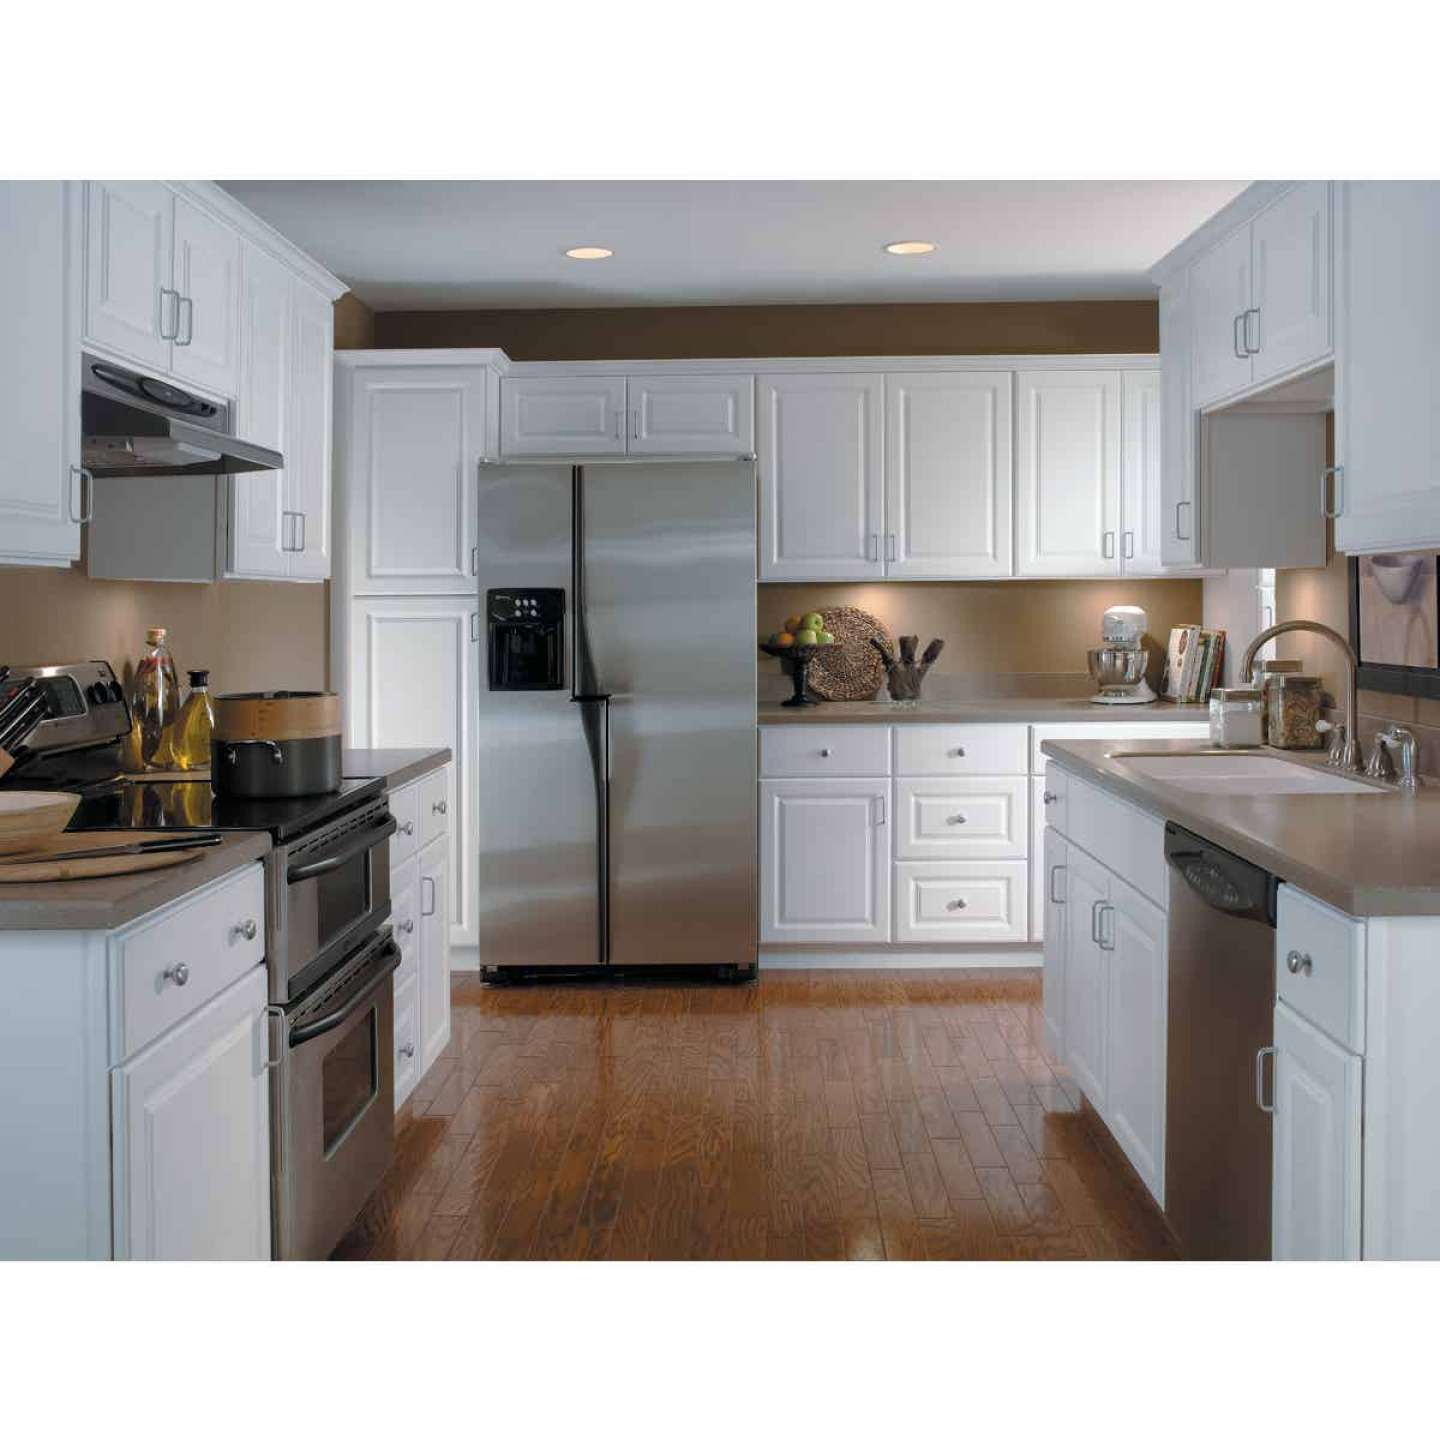 Continental Cabinets Hamilton 36 In. W x 34-1/2 In. H x 24 In. D Satin White Maple Base Kitchen Cabinet Image 2